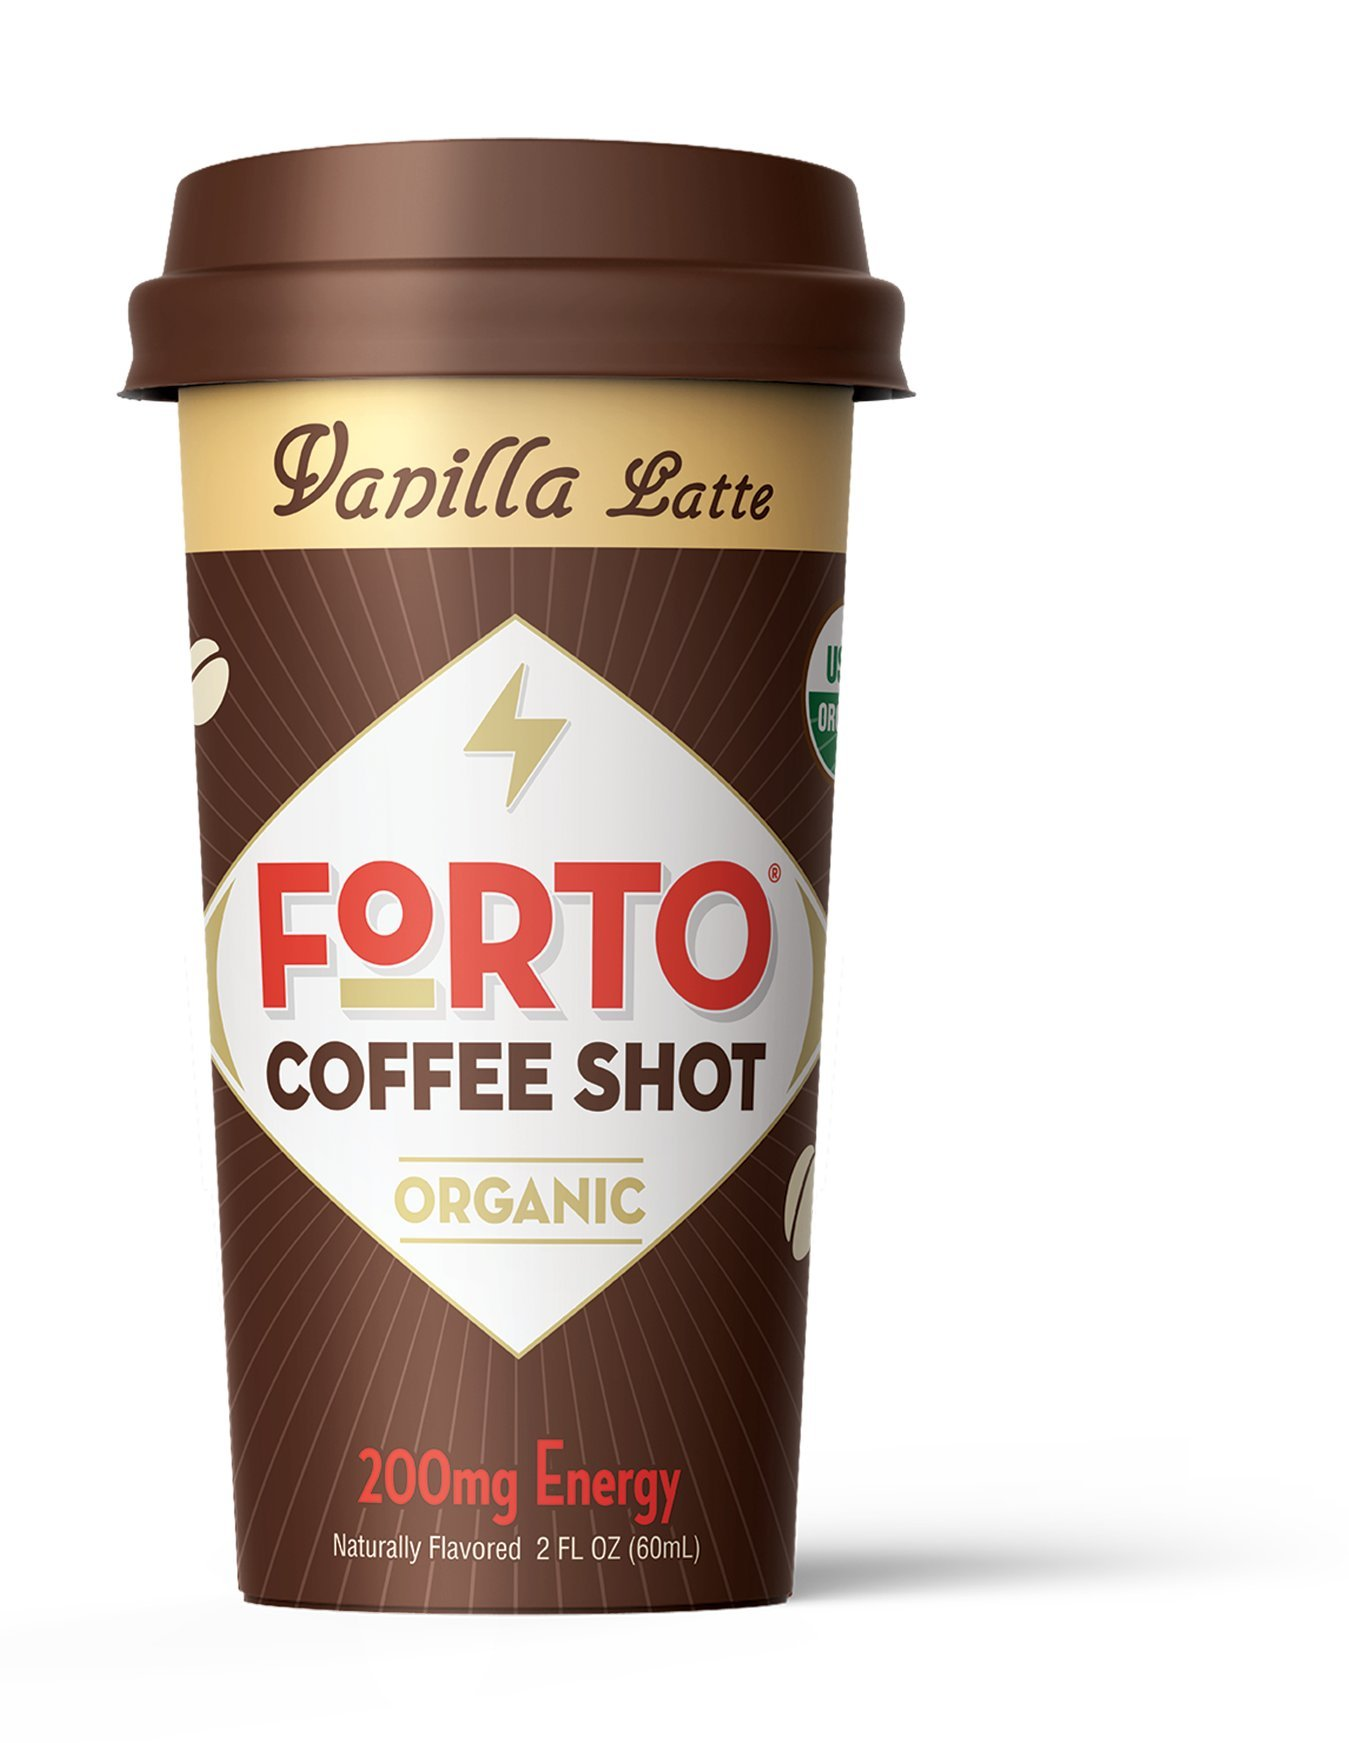 FORTO Coffee Shots - 200mg Caffeine, Vanilla Latte, High Caffeine Cold Brew Coffee, Bottled Fast Coffee Energy Boost, 12 pack by FORTO